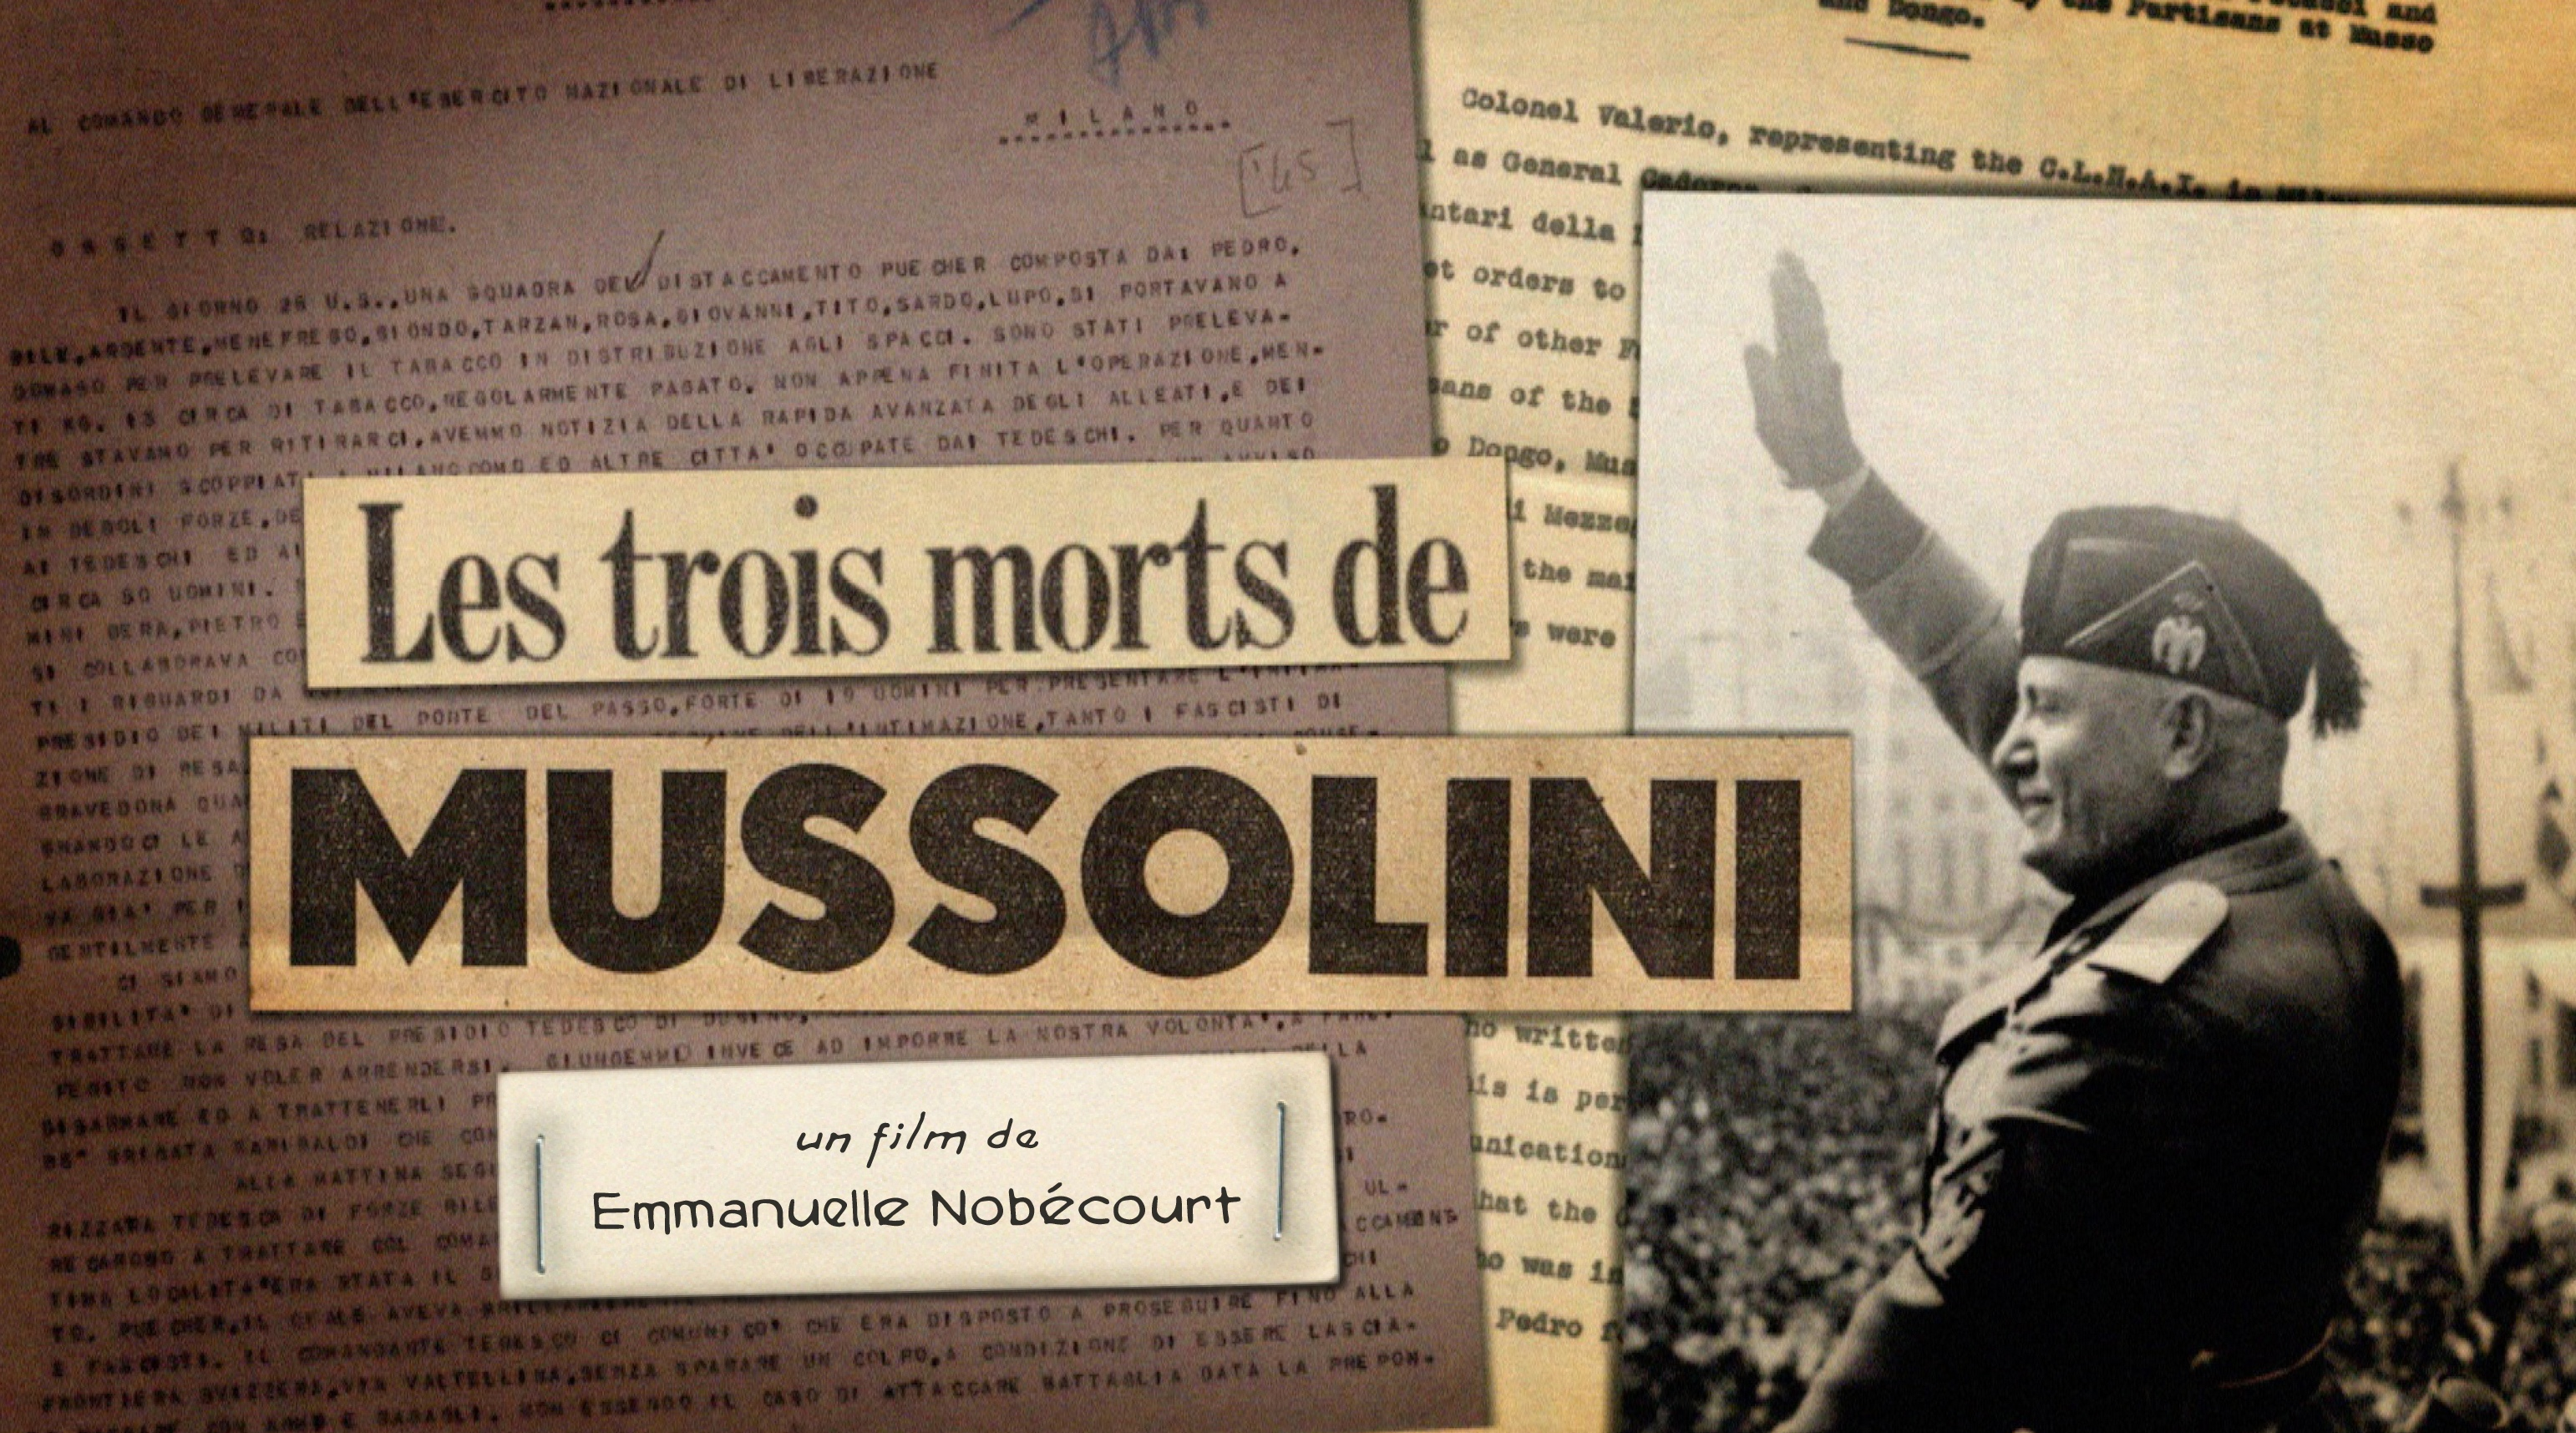 THE THREE DEATHS OF MUSSOLINI